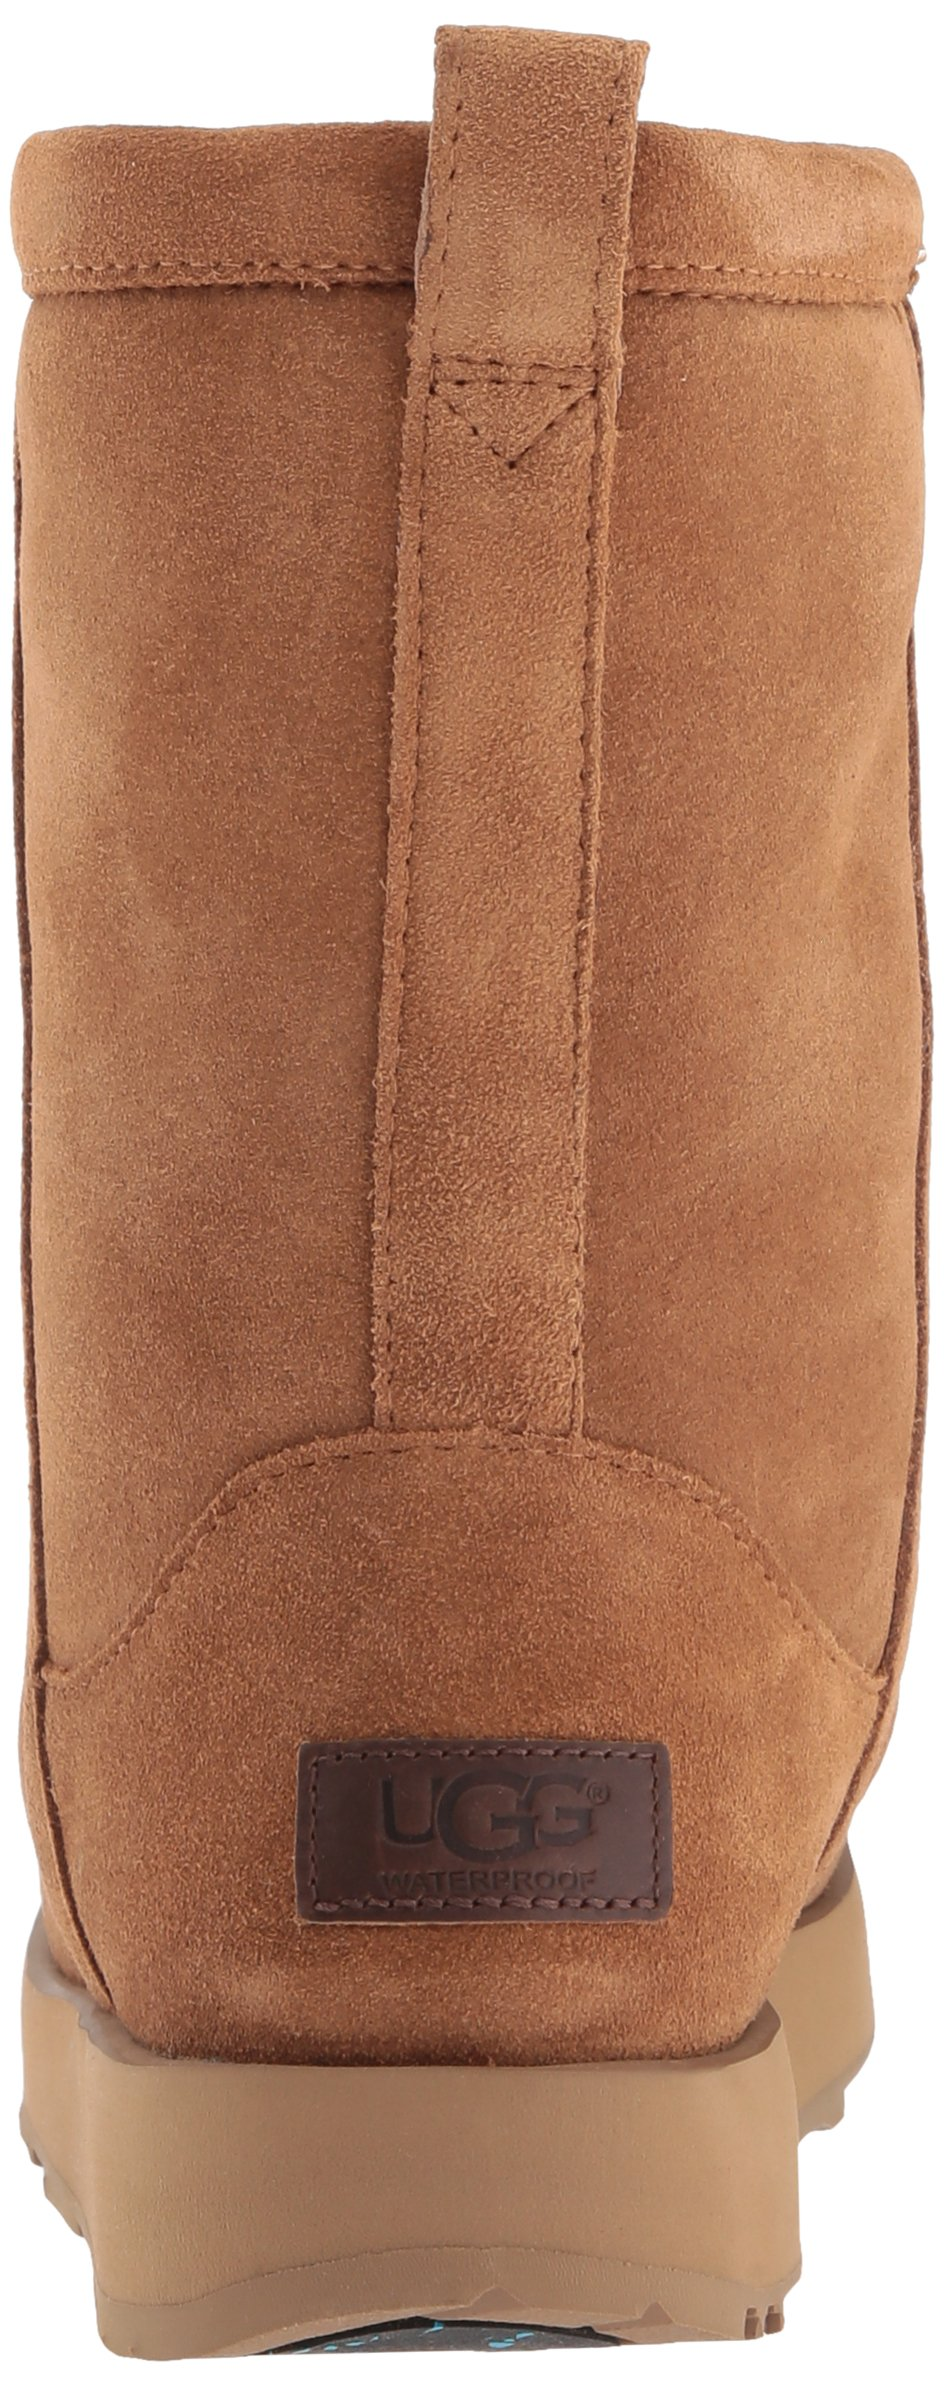 UGG Women's Classic Short Waterproof Snow Boot, Chestnut, 9 M US by UGG (Image #2)